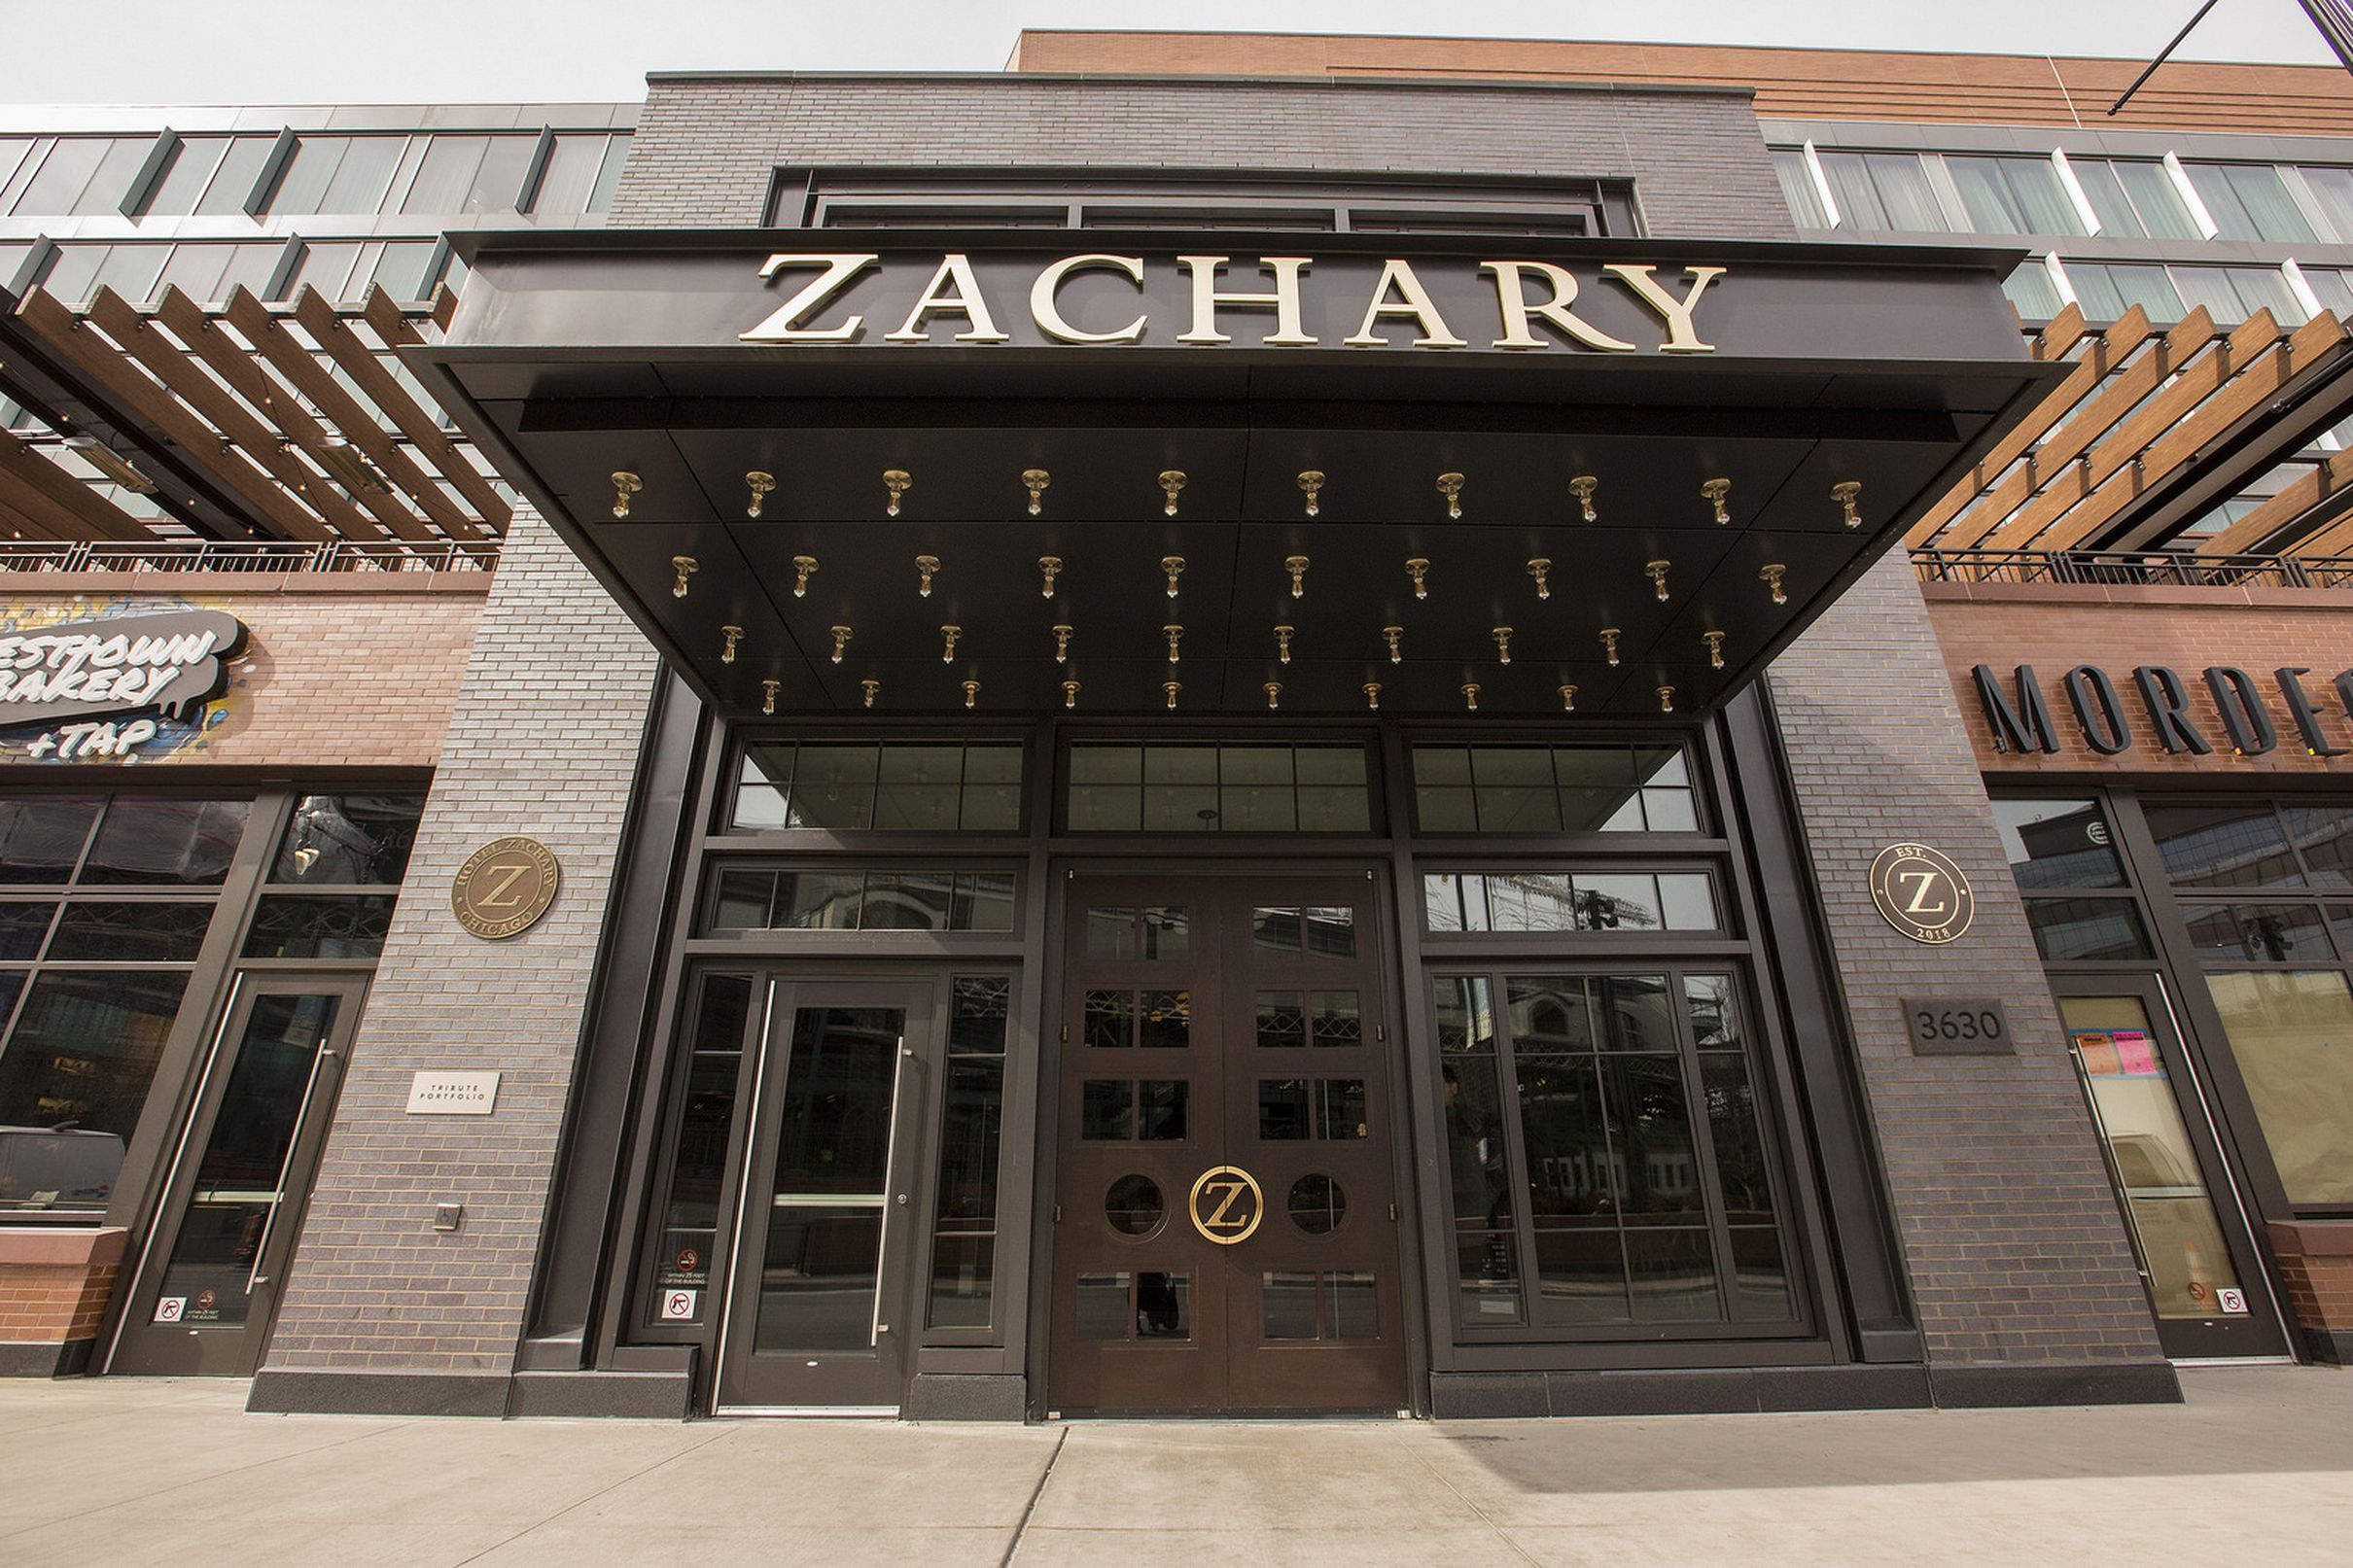 Wrigleyville S Transformed Thanks To The Hotel Zachary Chicago